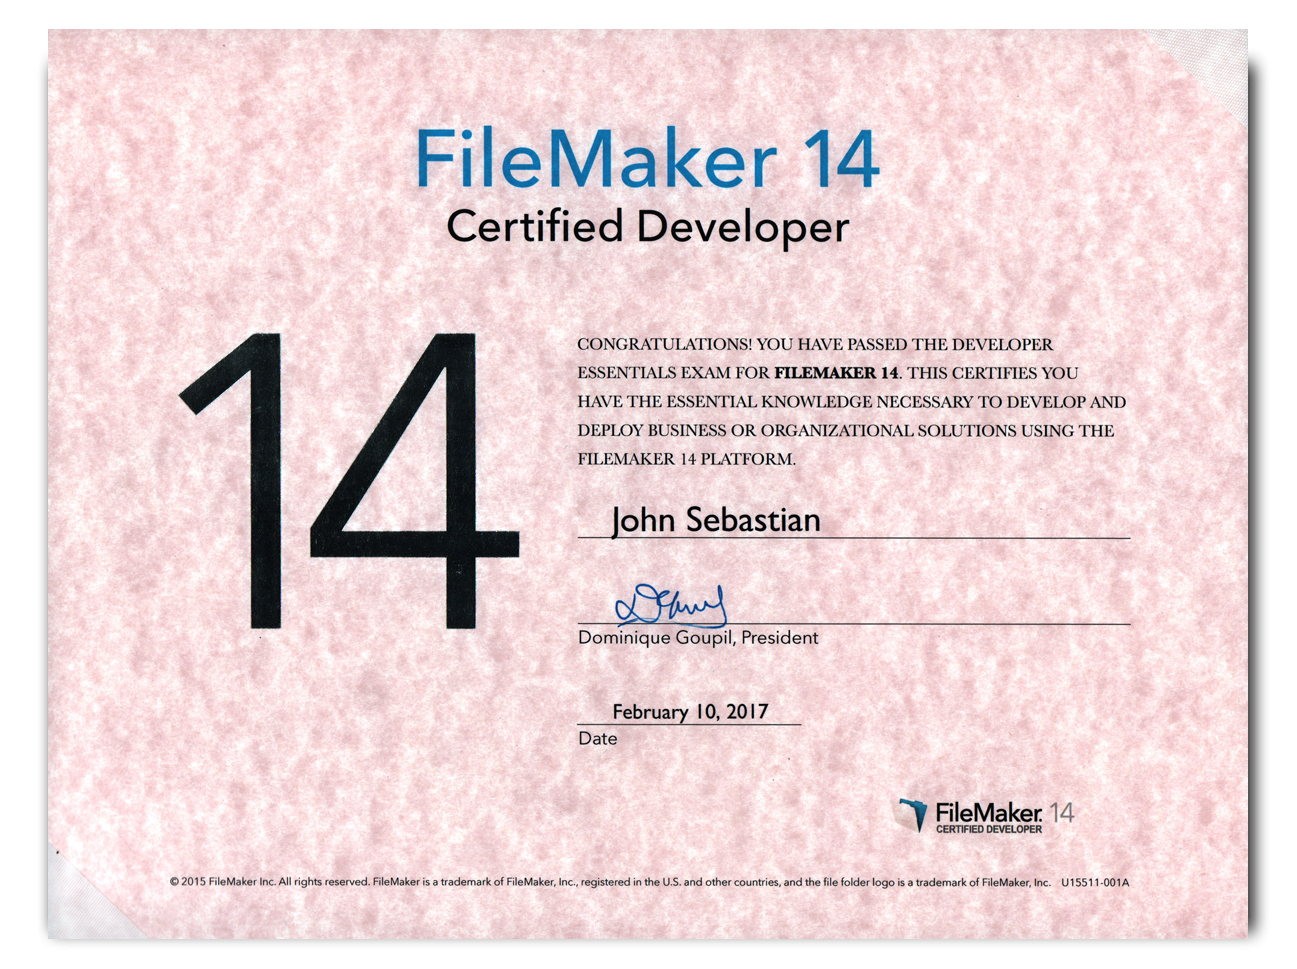 FileMaker Pro Certified Developer, Version 14